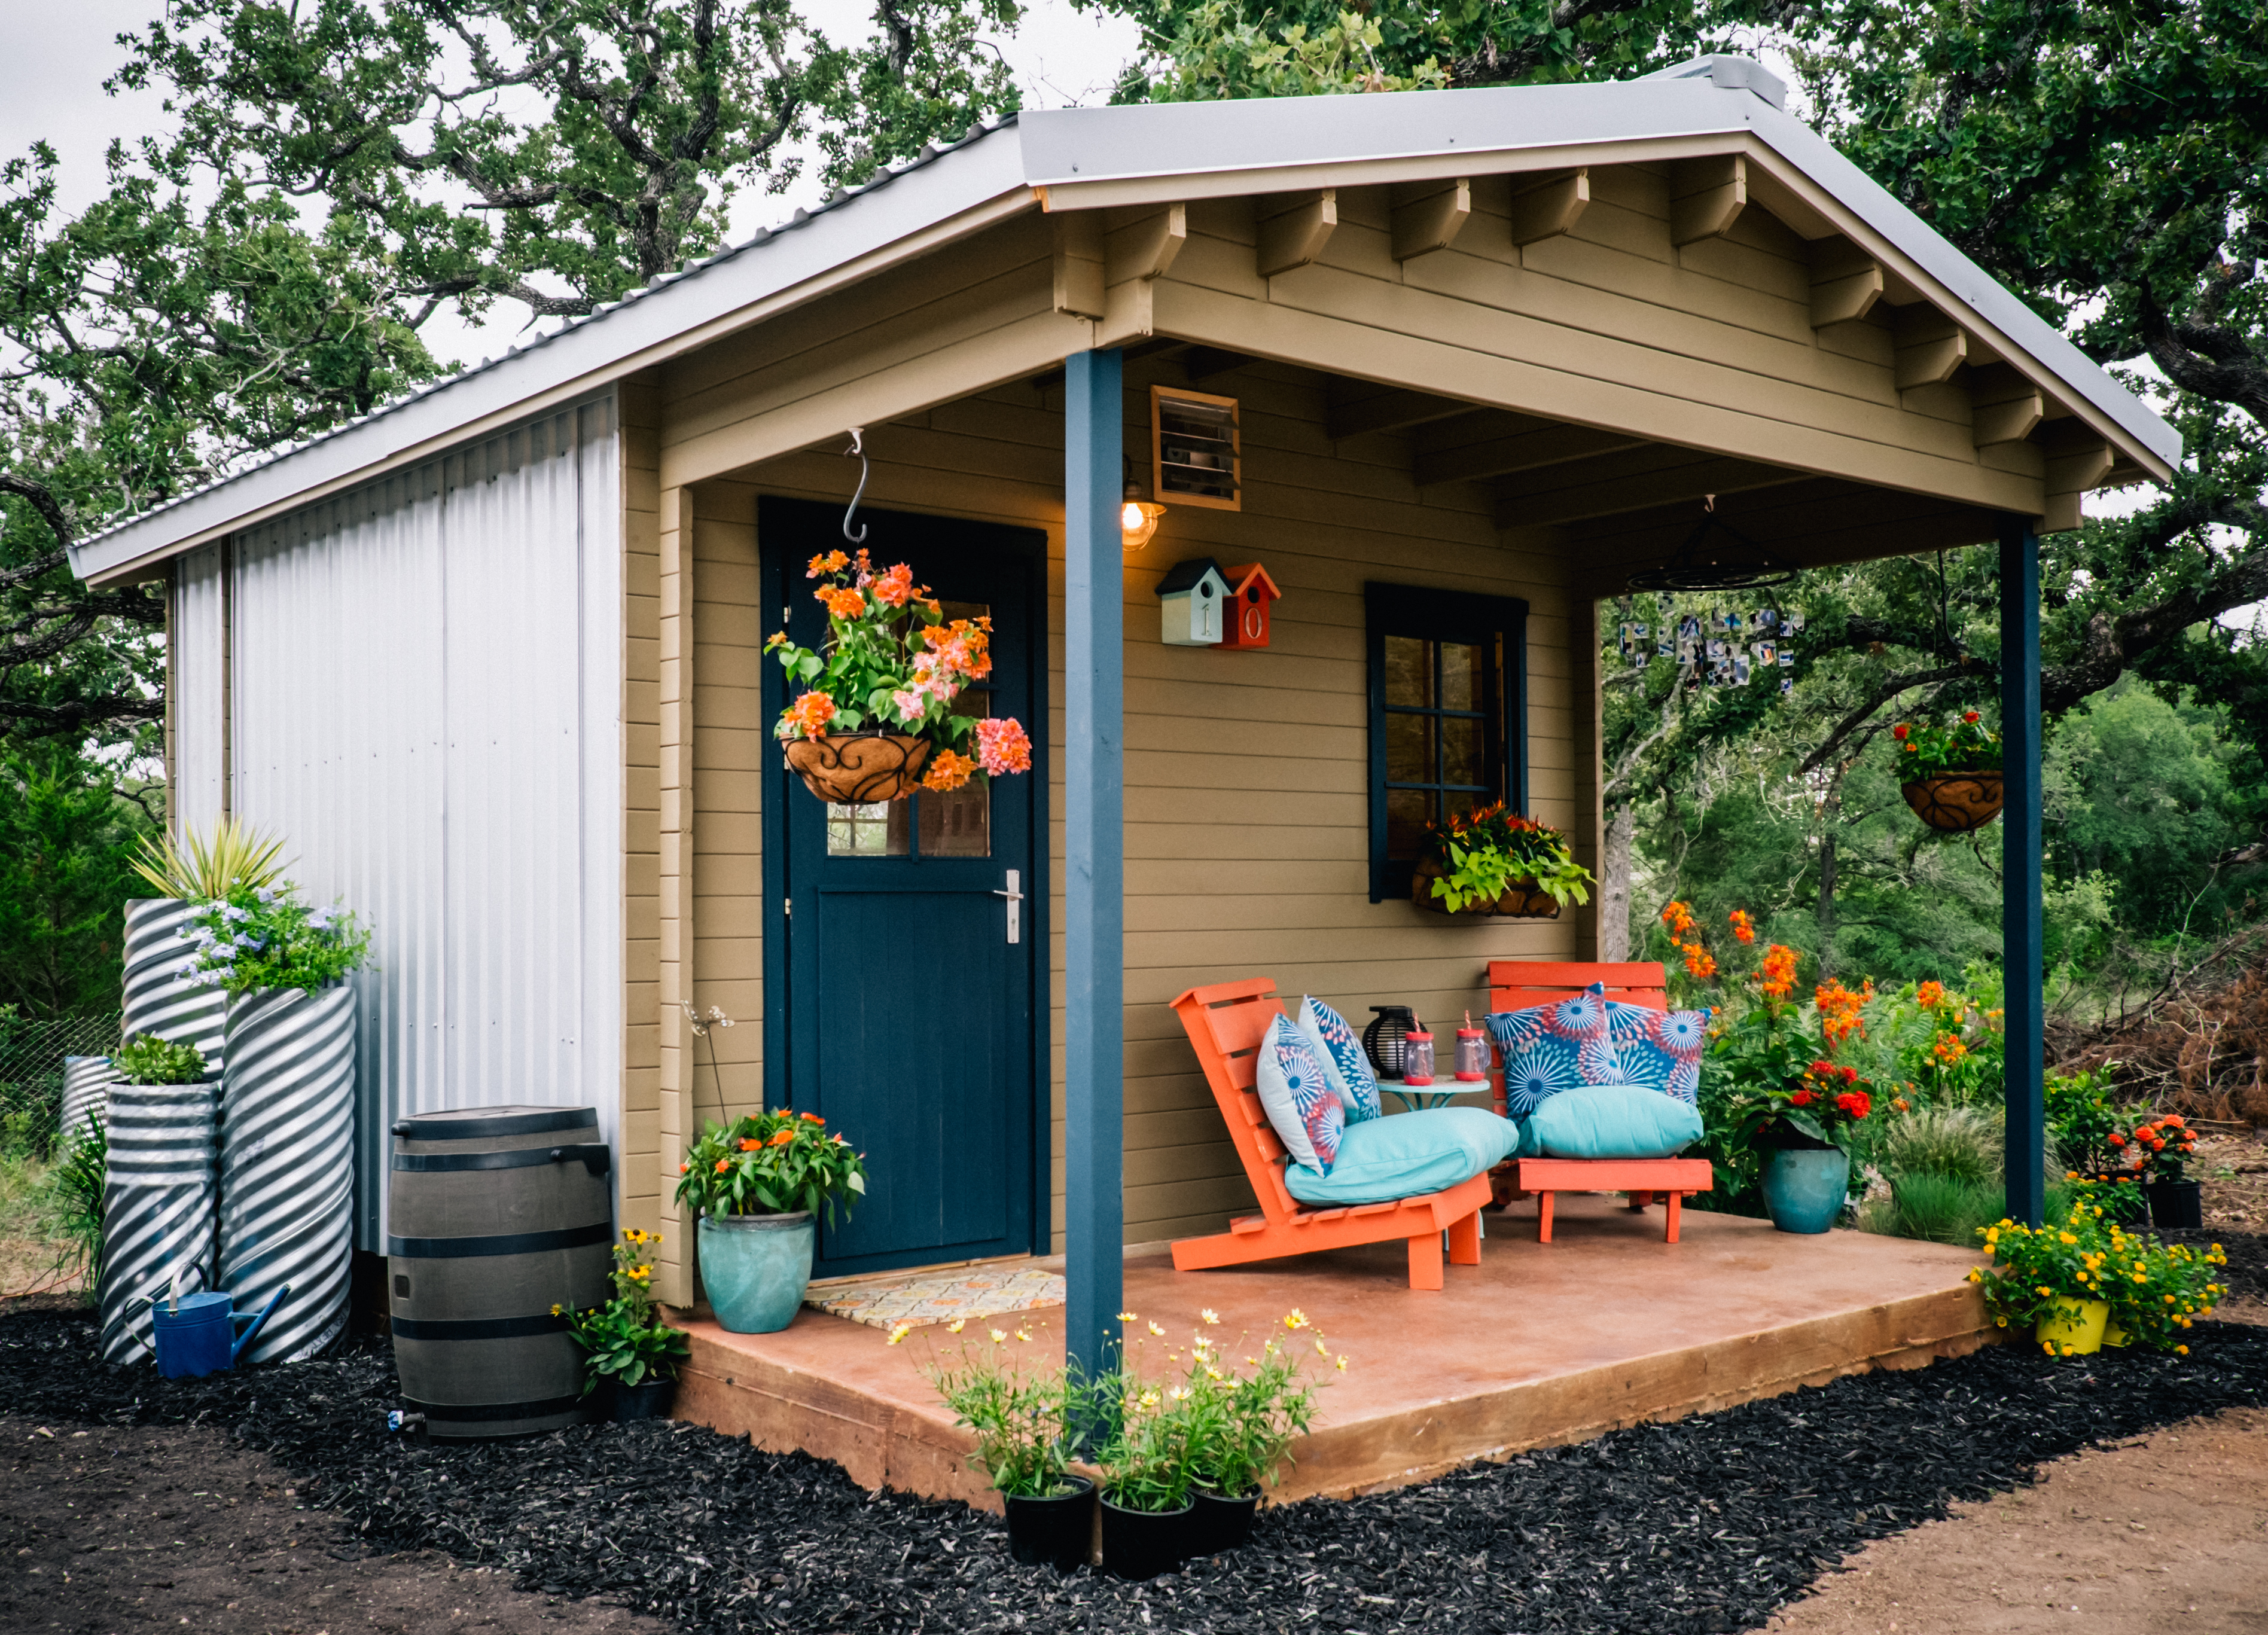 Tiny Houses in Austin Are Helping the Homeless, but It Still Takes on minecraft candy villages, earthship villages, grass minecraft villages, usa villages, tiny village online, tiny eco homes, tiny cabins at sacred mountain sanctuary, tiny homes book, southern colonies homes and villages, tiny houses, tiny homes of 2013, tiny dwellings,